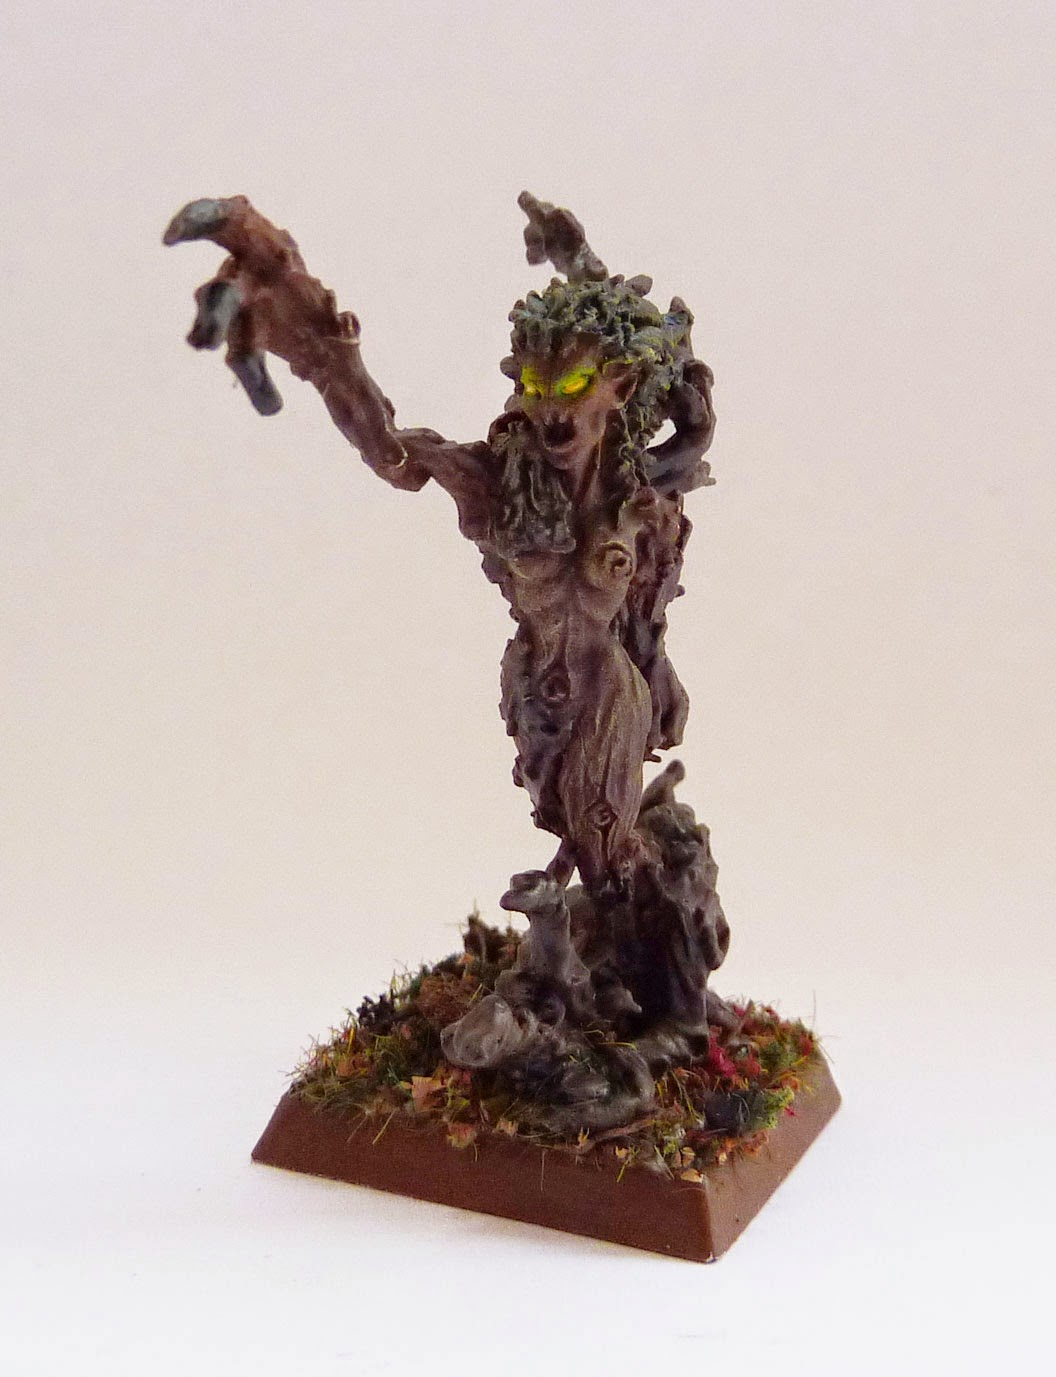 Drycha, Briarmaven of Woe, from Warhammer Wood Elves